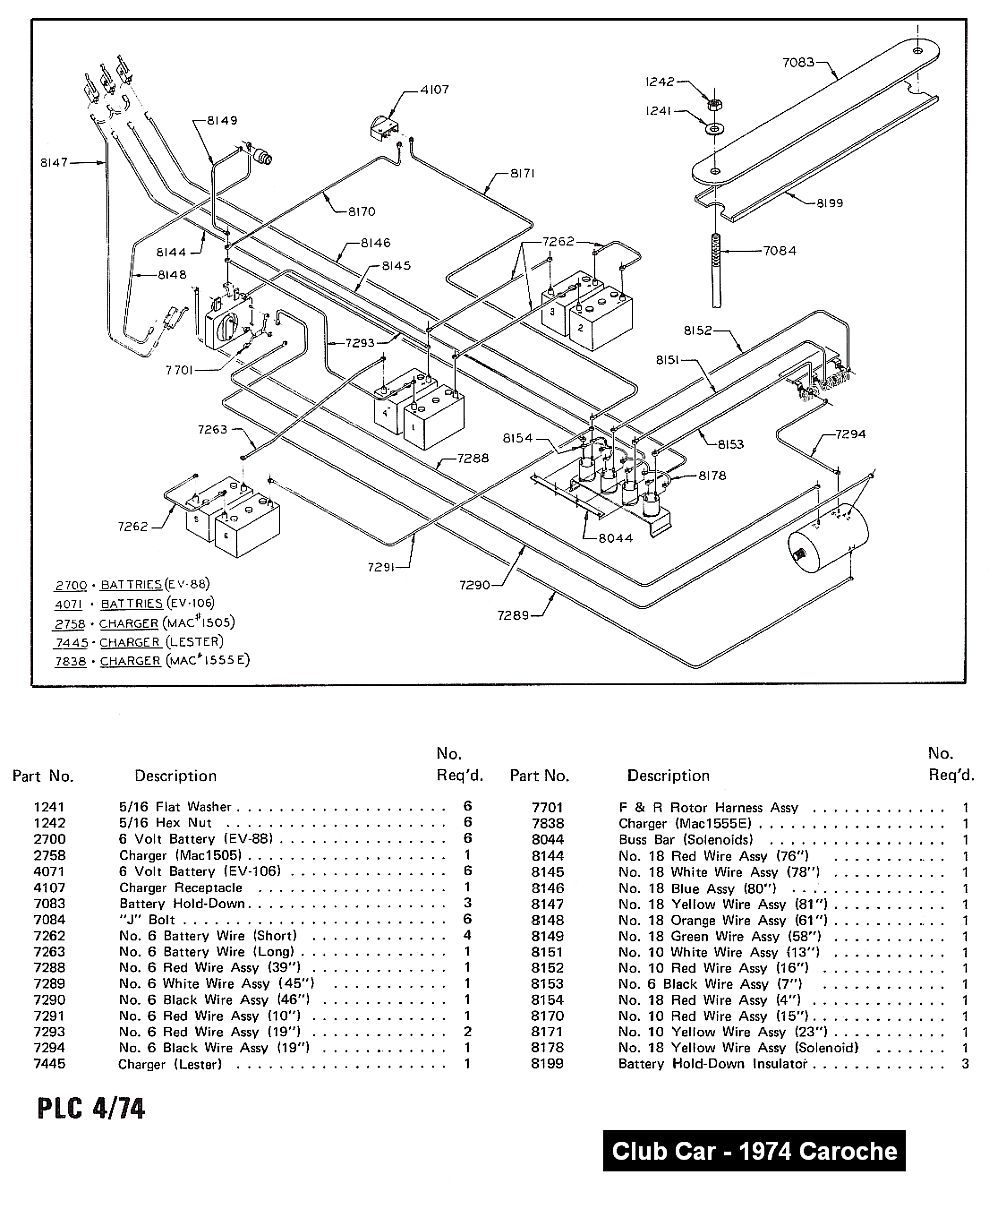 Wiring Diagram For 36 Volt Club Car Golf Cart